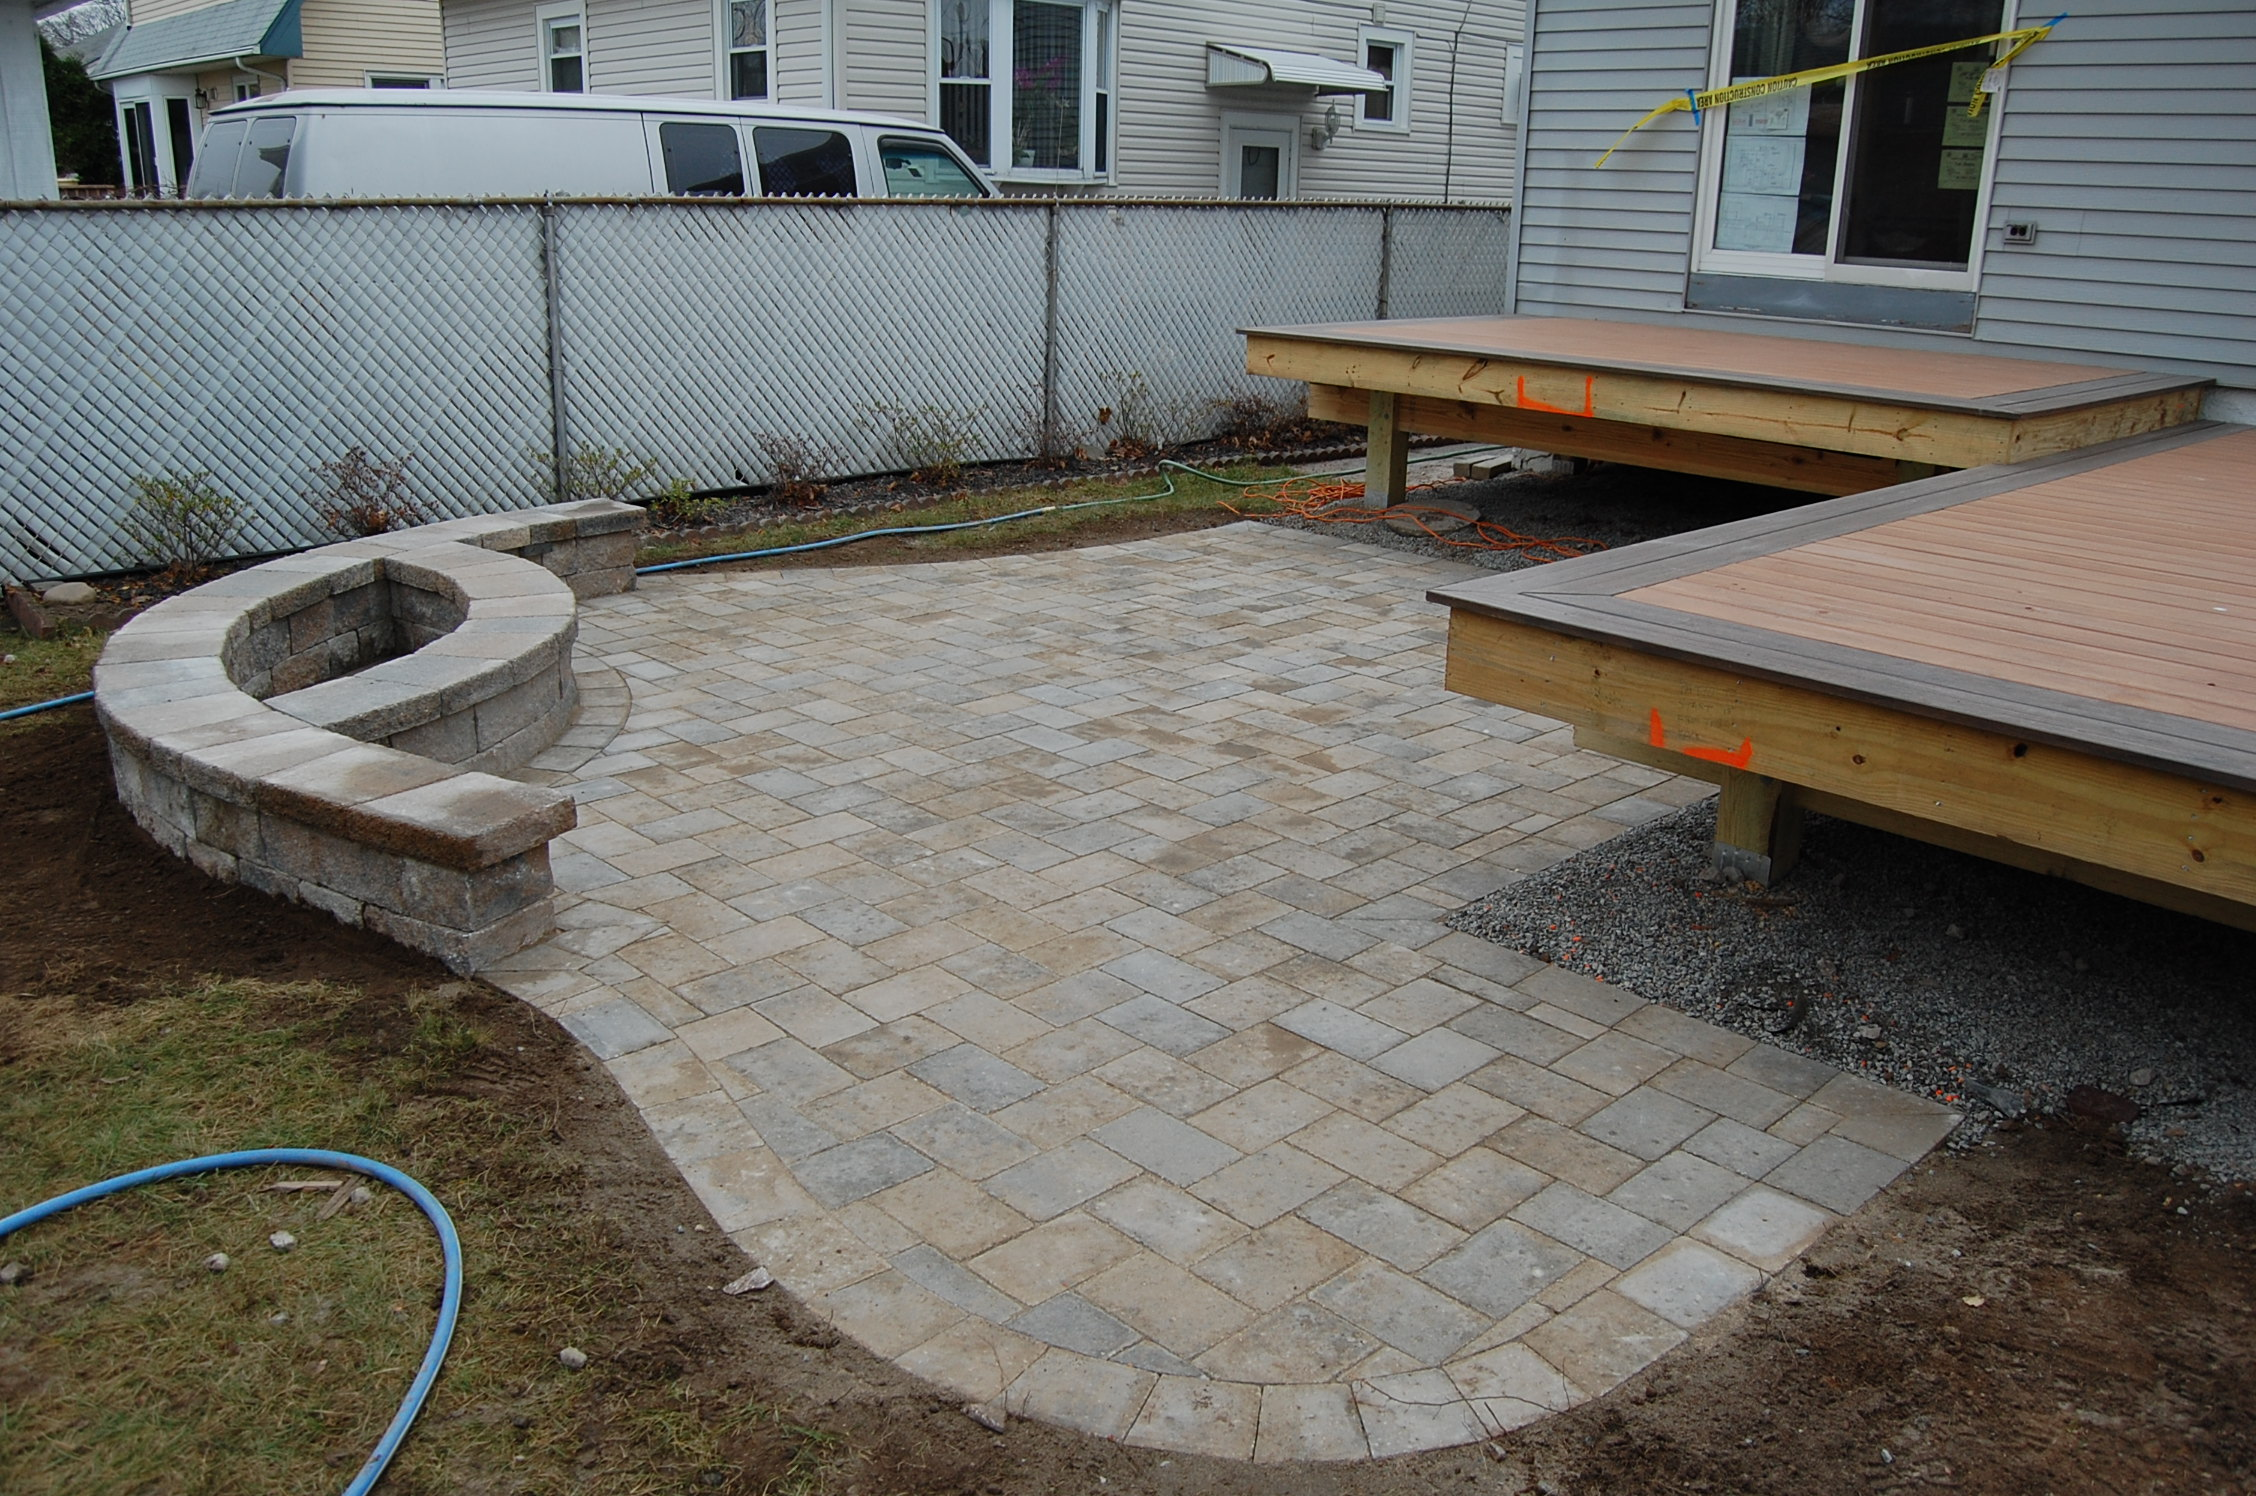 At Bergen Decks, We Look At The Backyard As Blank Canvas And Are Able To  Blend Building Materials And Techniques To Create A Plan That Is Open,  Inviting And ...